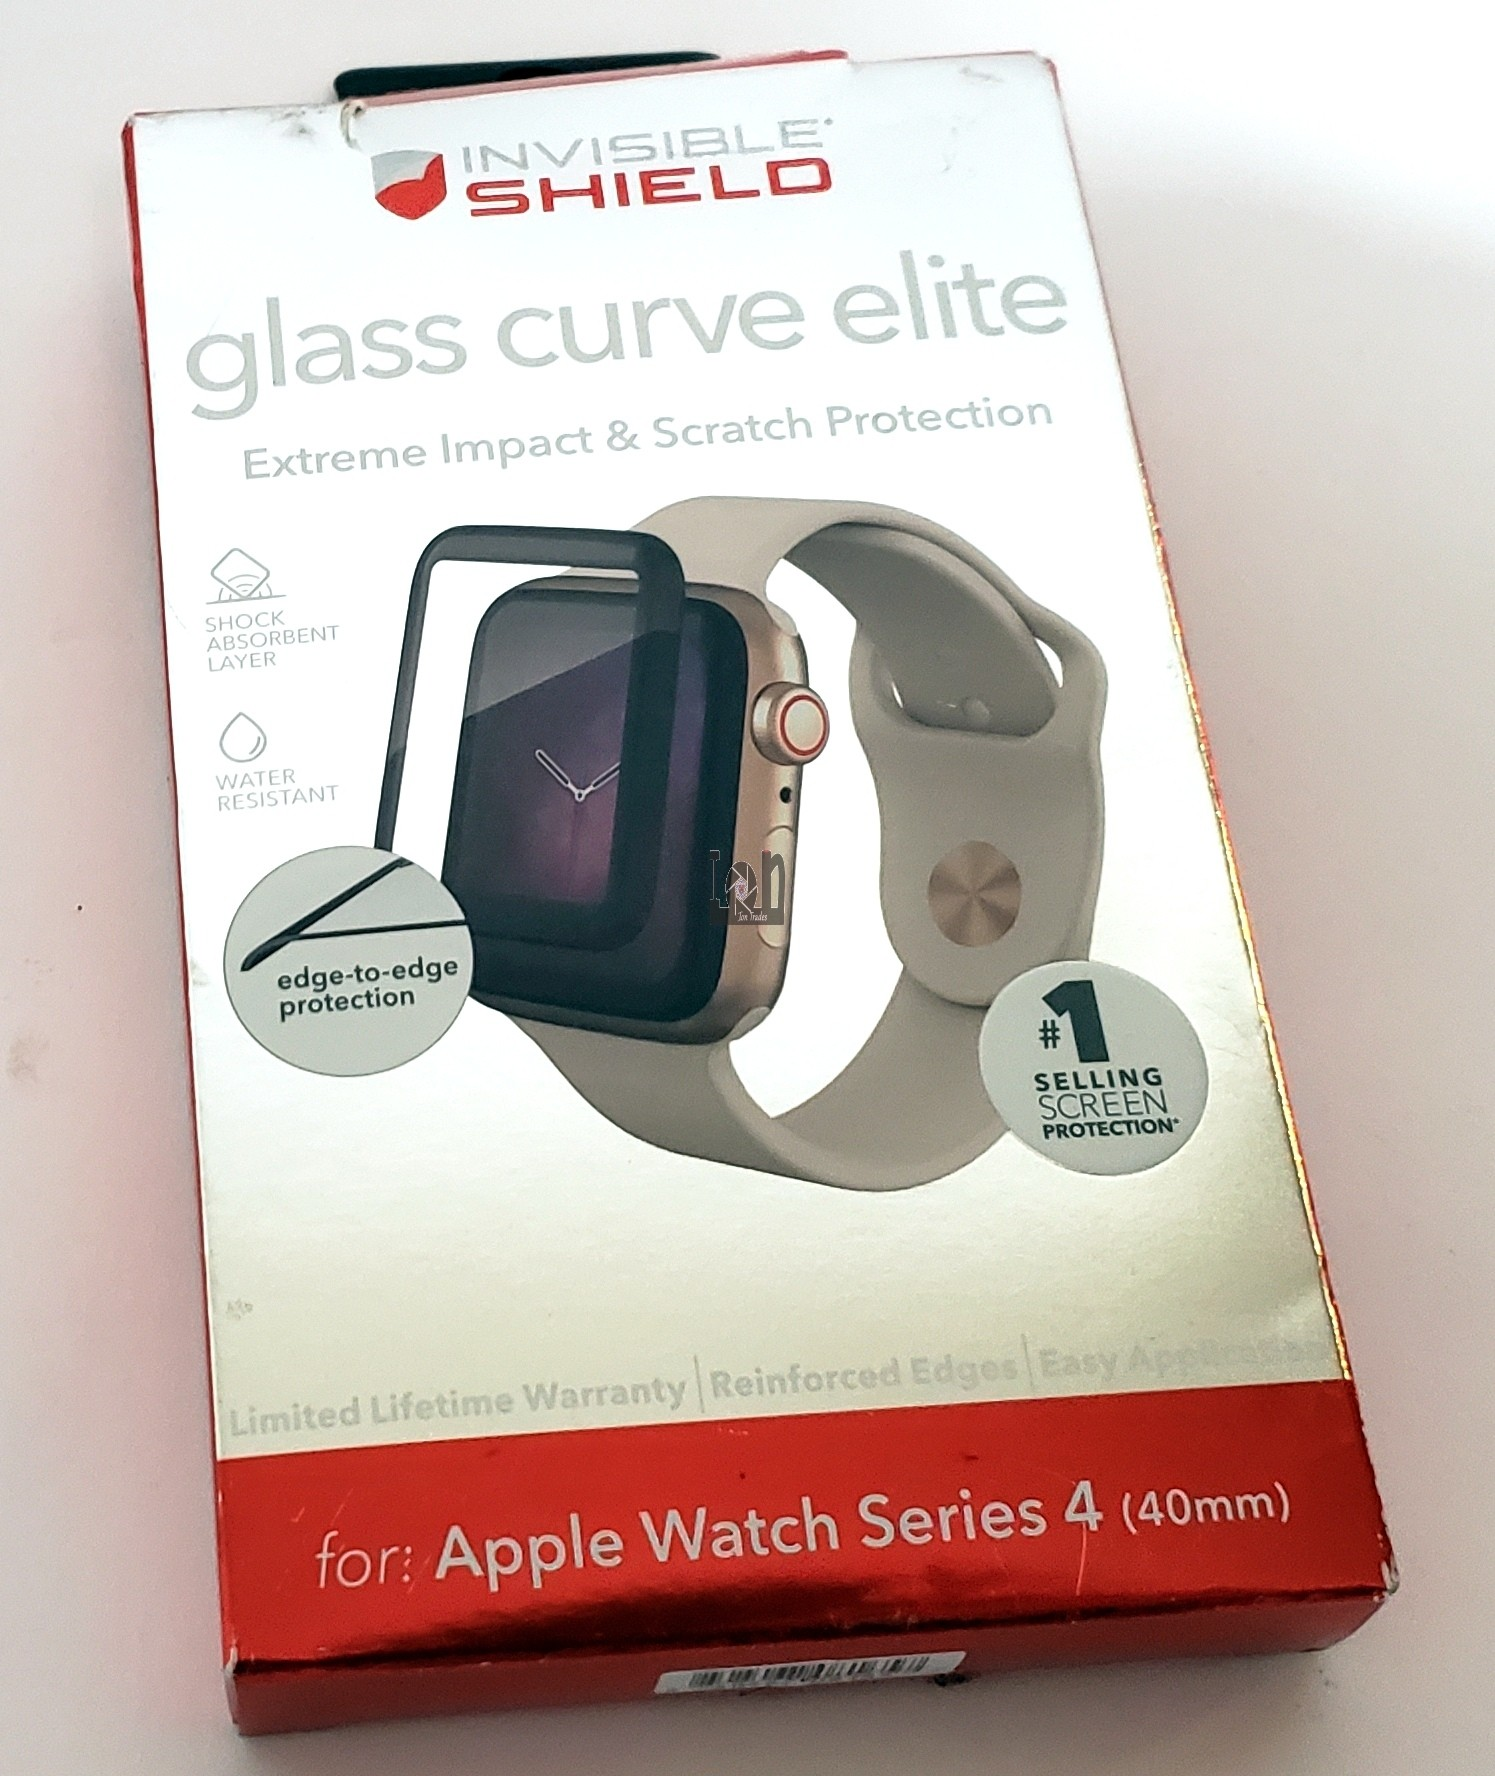 ZAGG InvisibleShield for Apple Watch Series 4 40mm Glass Curve Elite